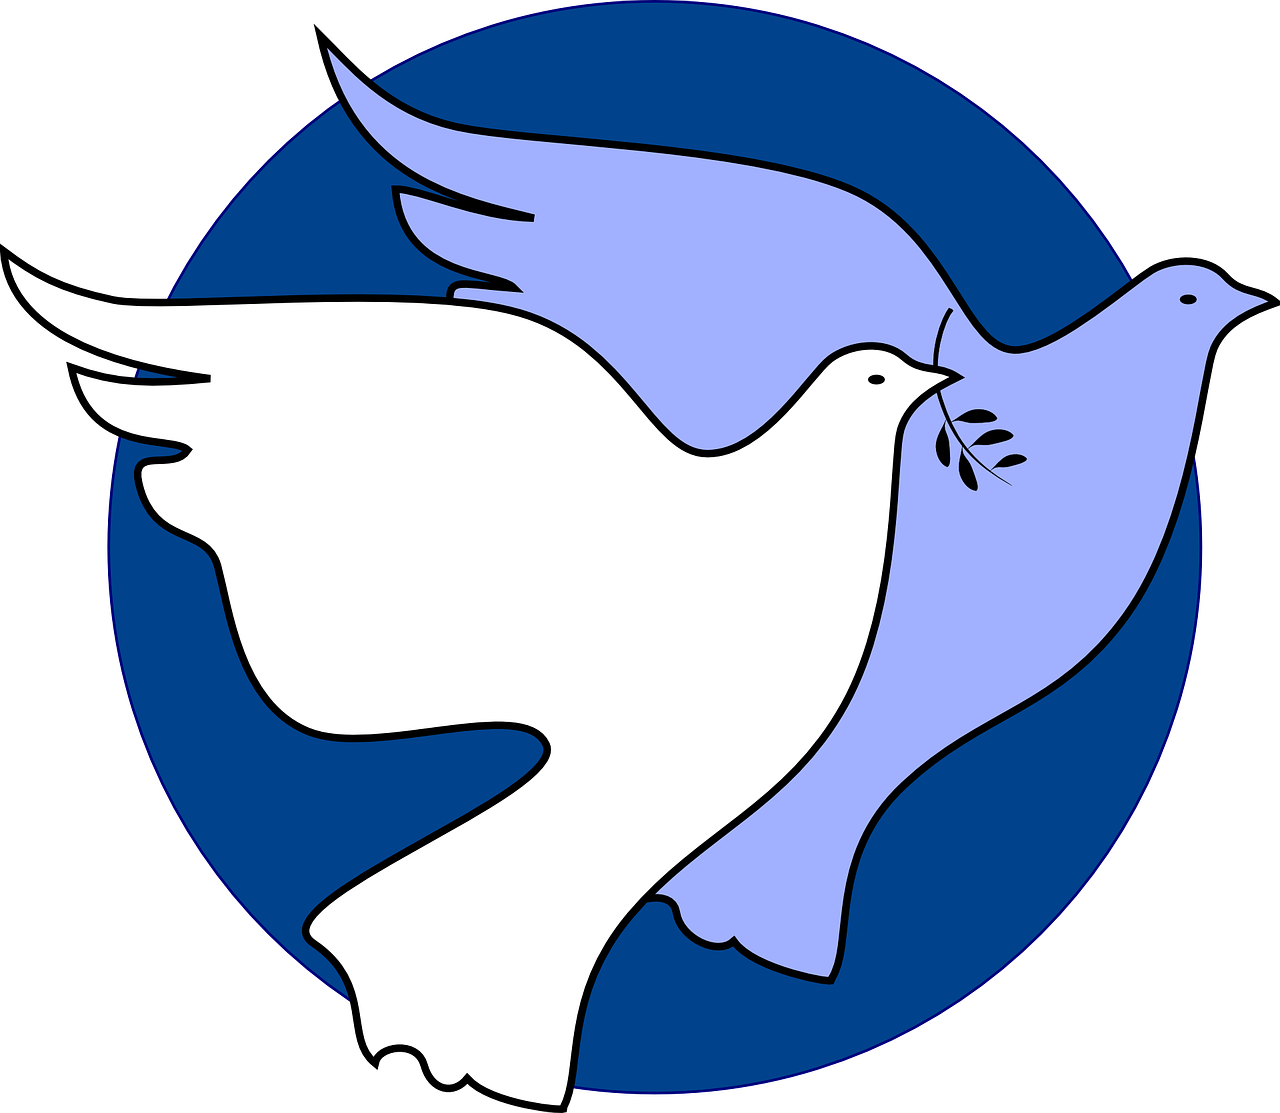 Peace clipart non violence Scheduled Carbondale New 36573_1280 Week